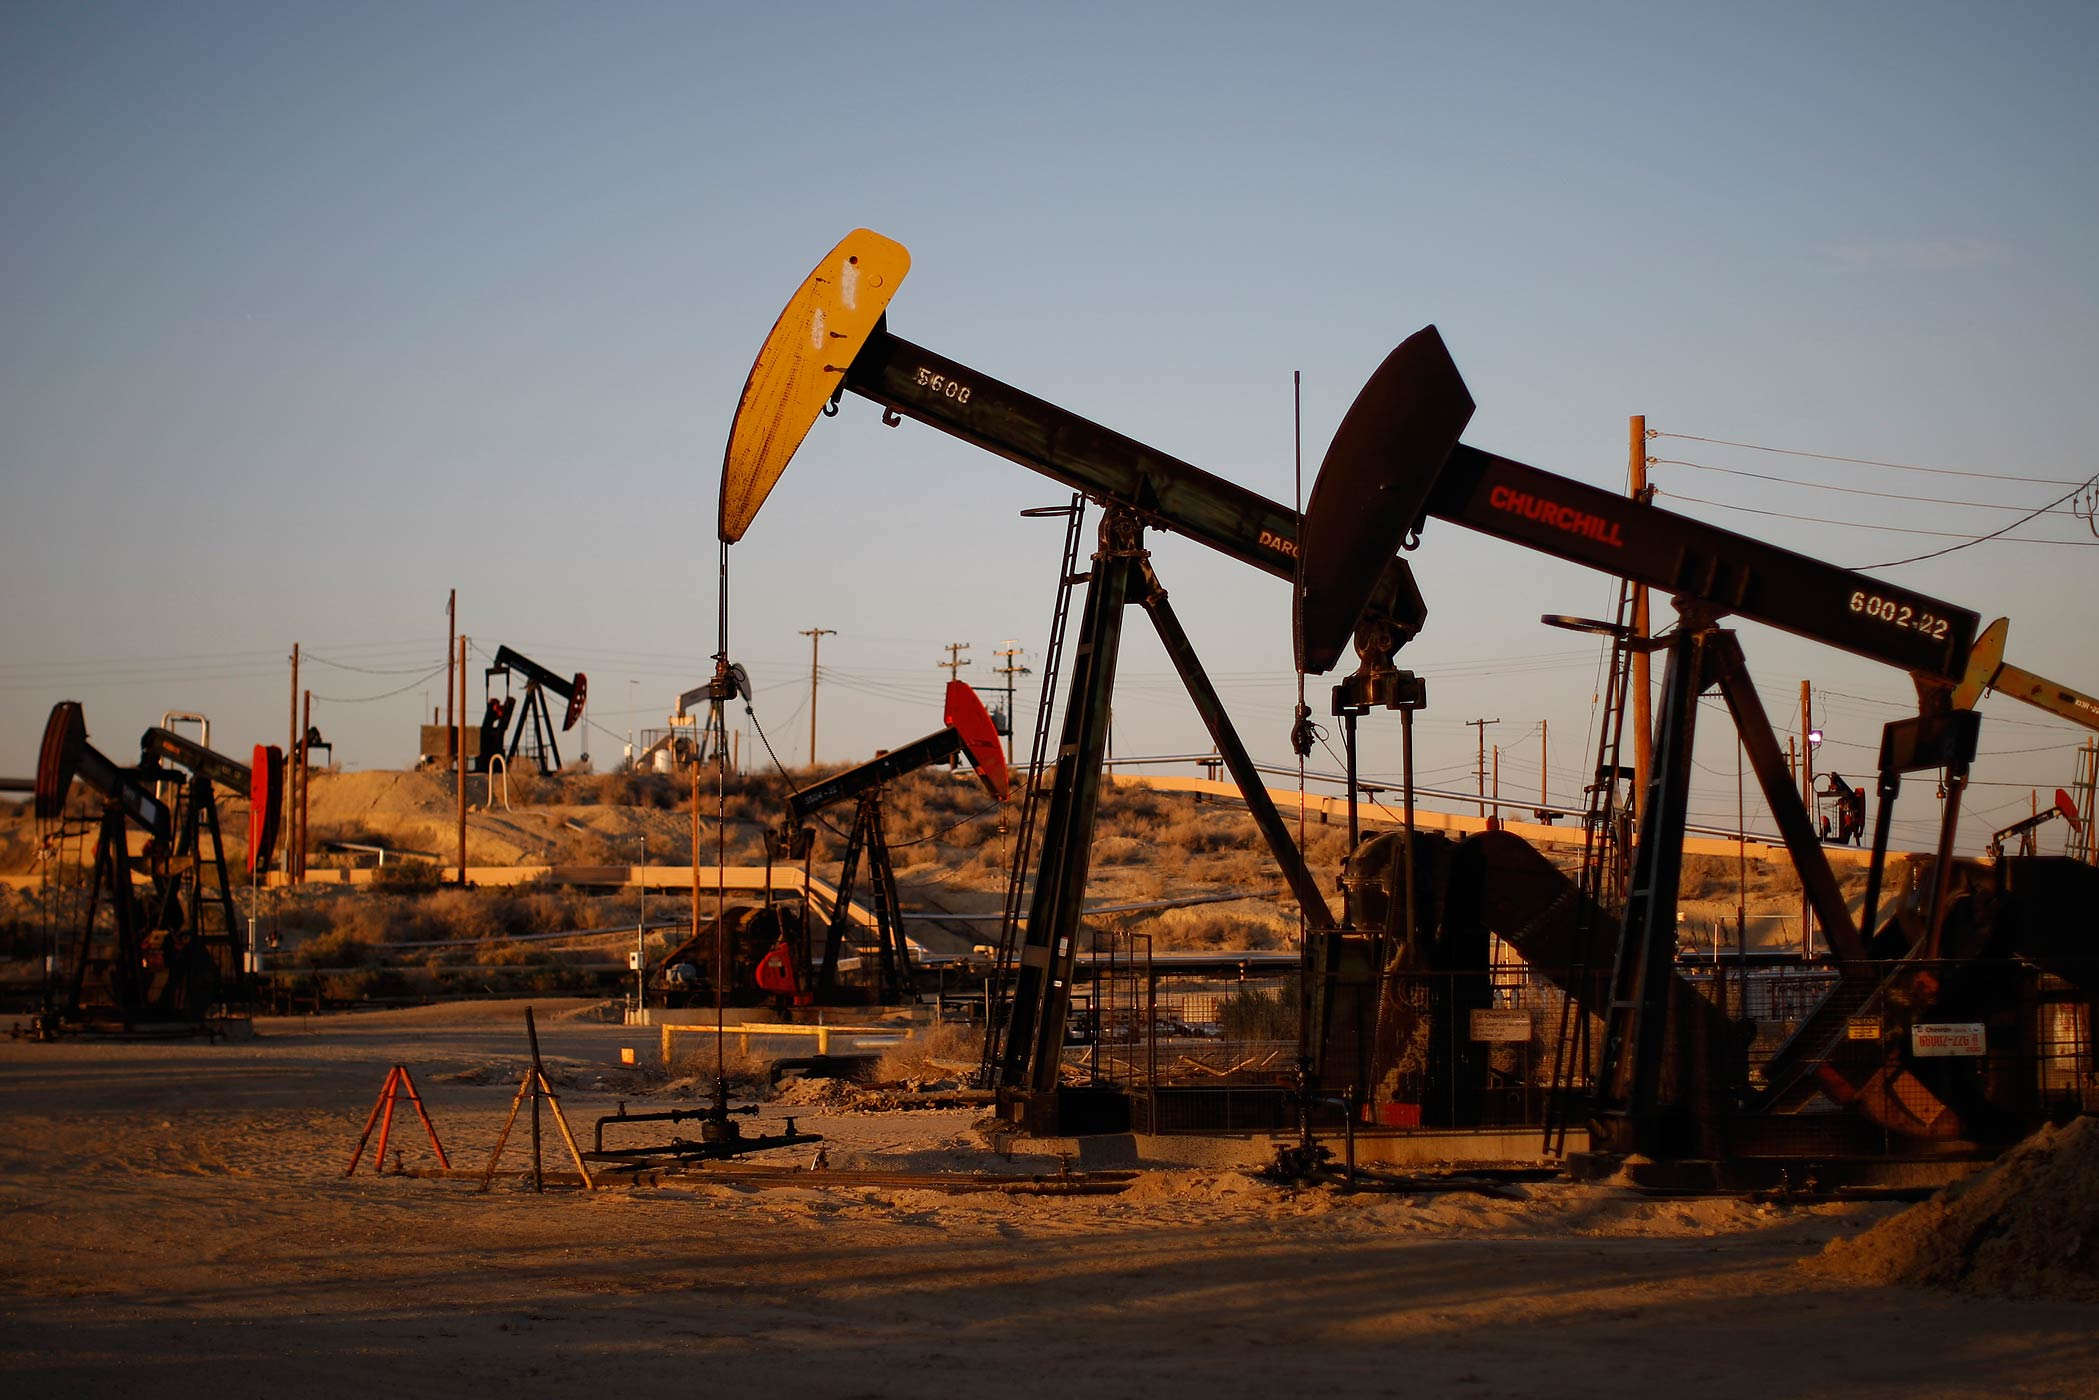 Pump jacks and wells are seen in an oil field that uses fracking on the Monterey Shale formation near McKittrick, Ca. on March 23, 2014.